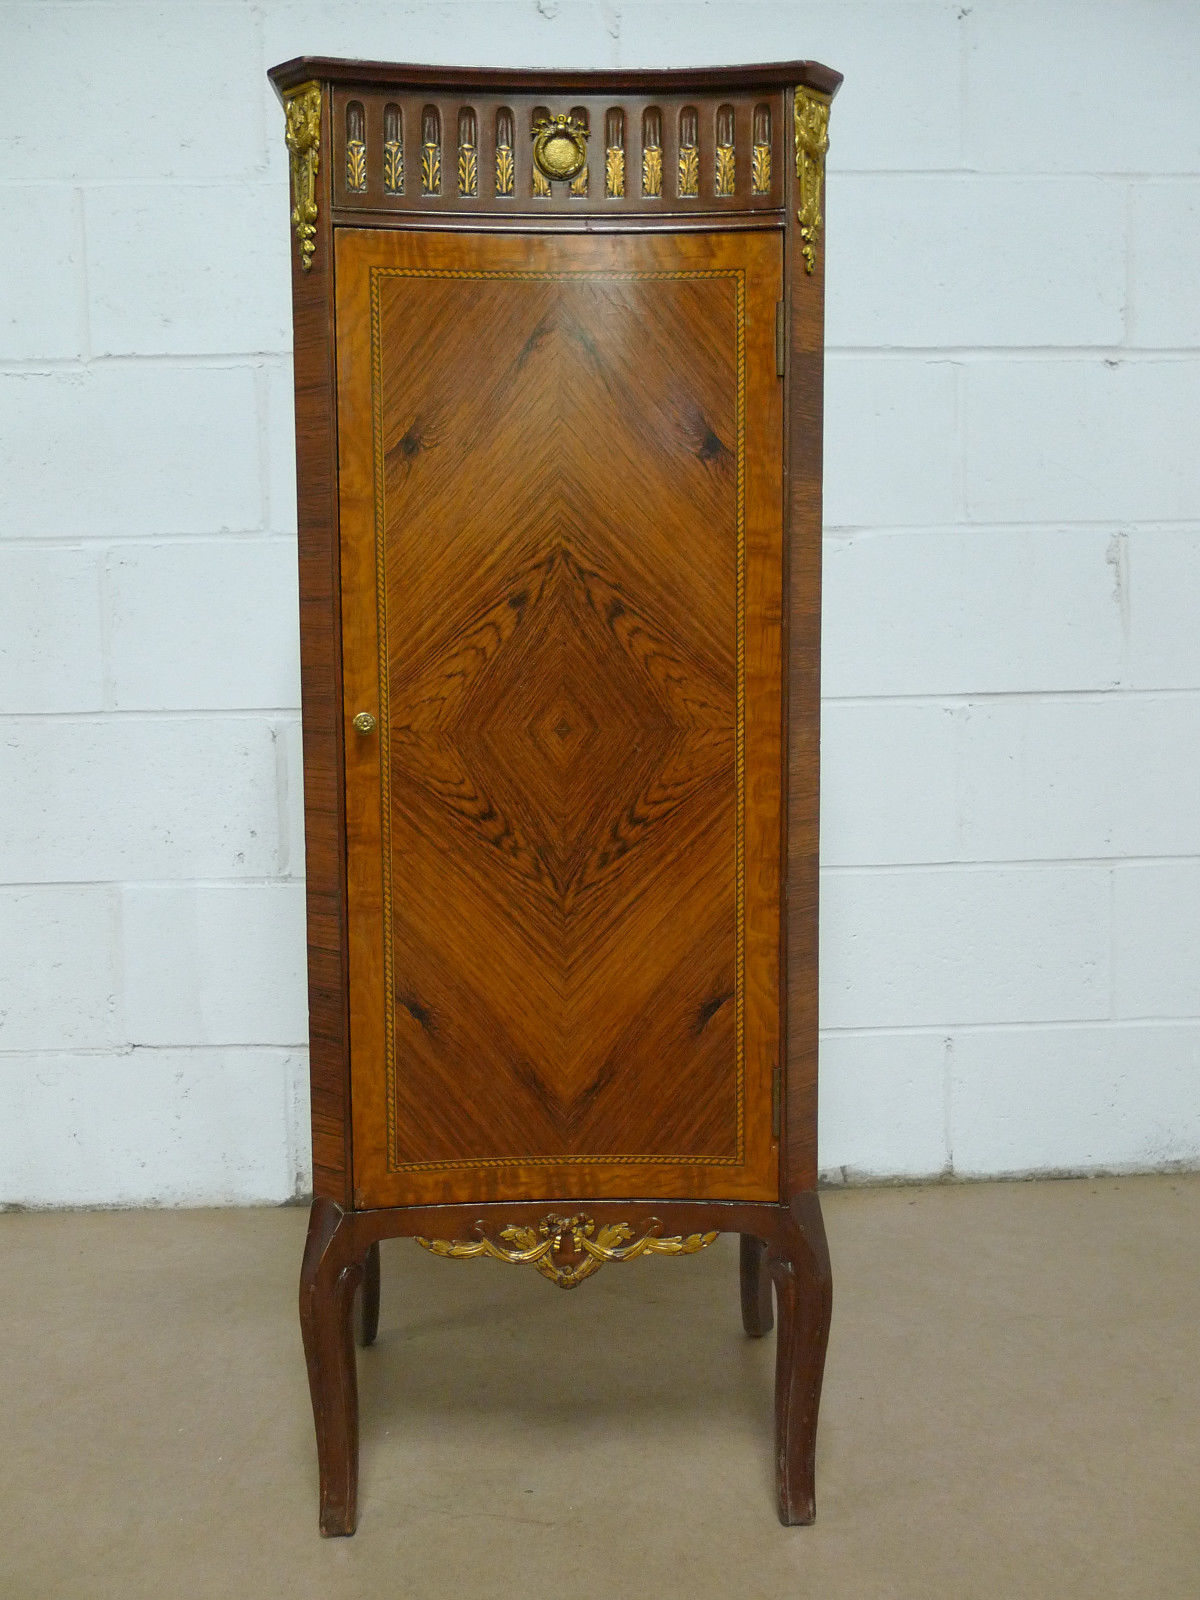 French Louis XVI style Rosewood Marquetry Cabinet Antique